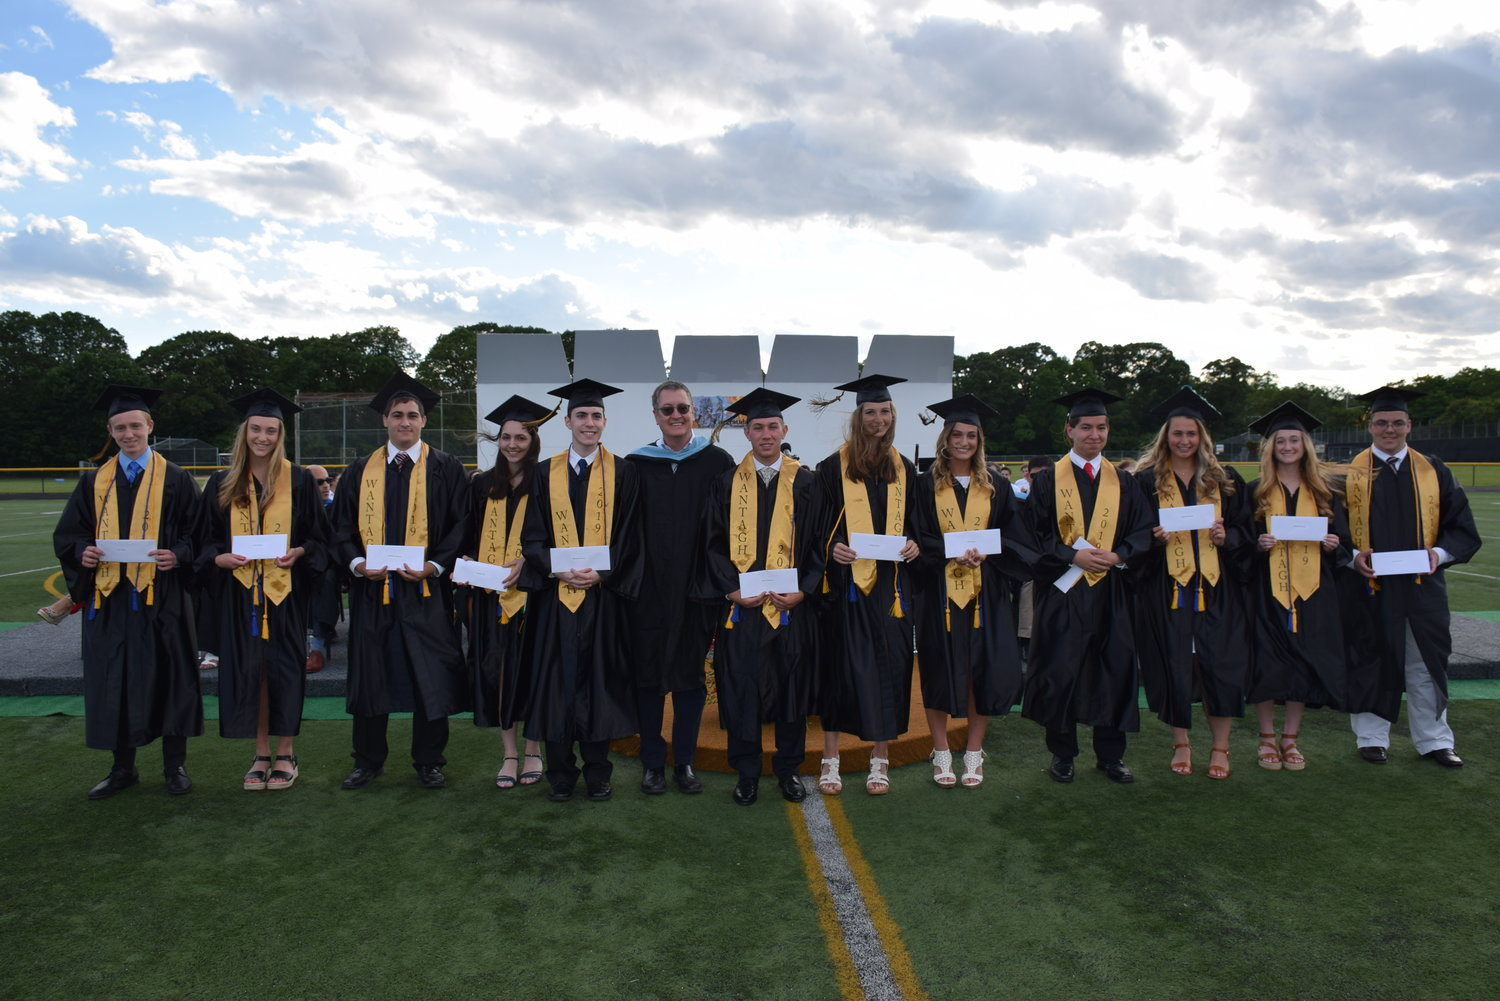 Wantagh Dollars for Scholars Scholarship Fund President Gerald McCrink, center, presented 12 graduates with scholarships.